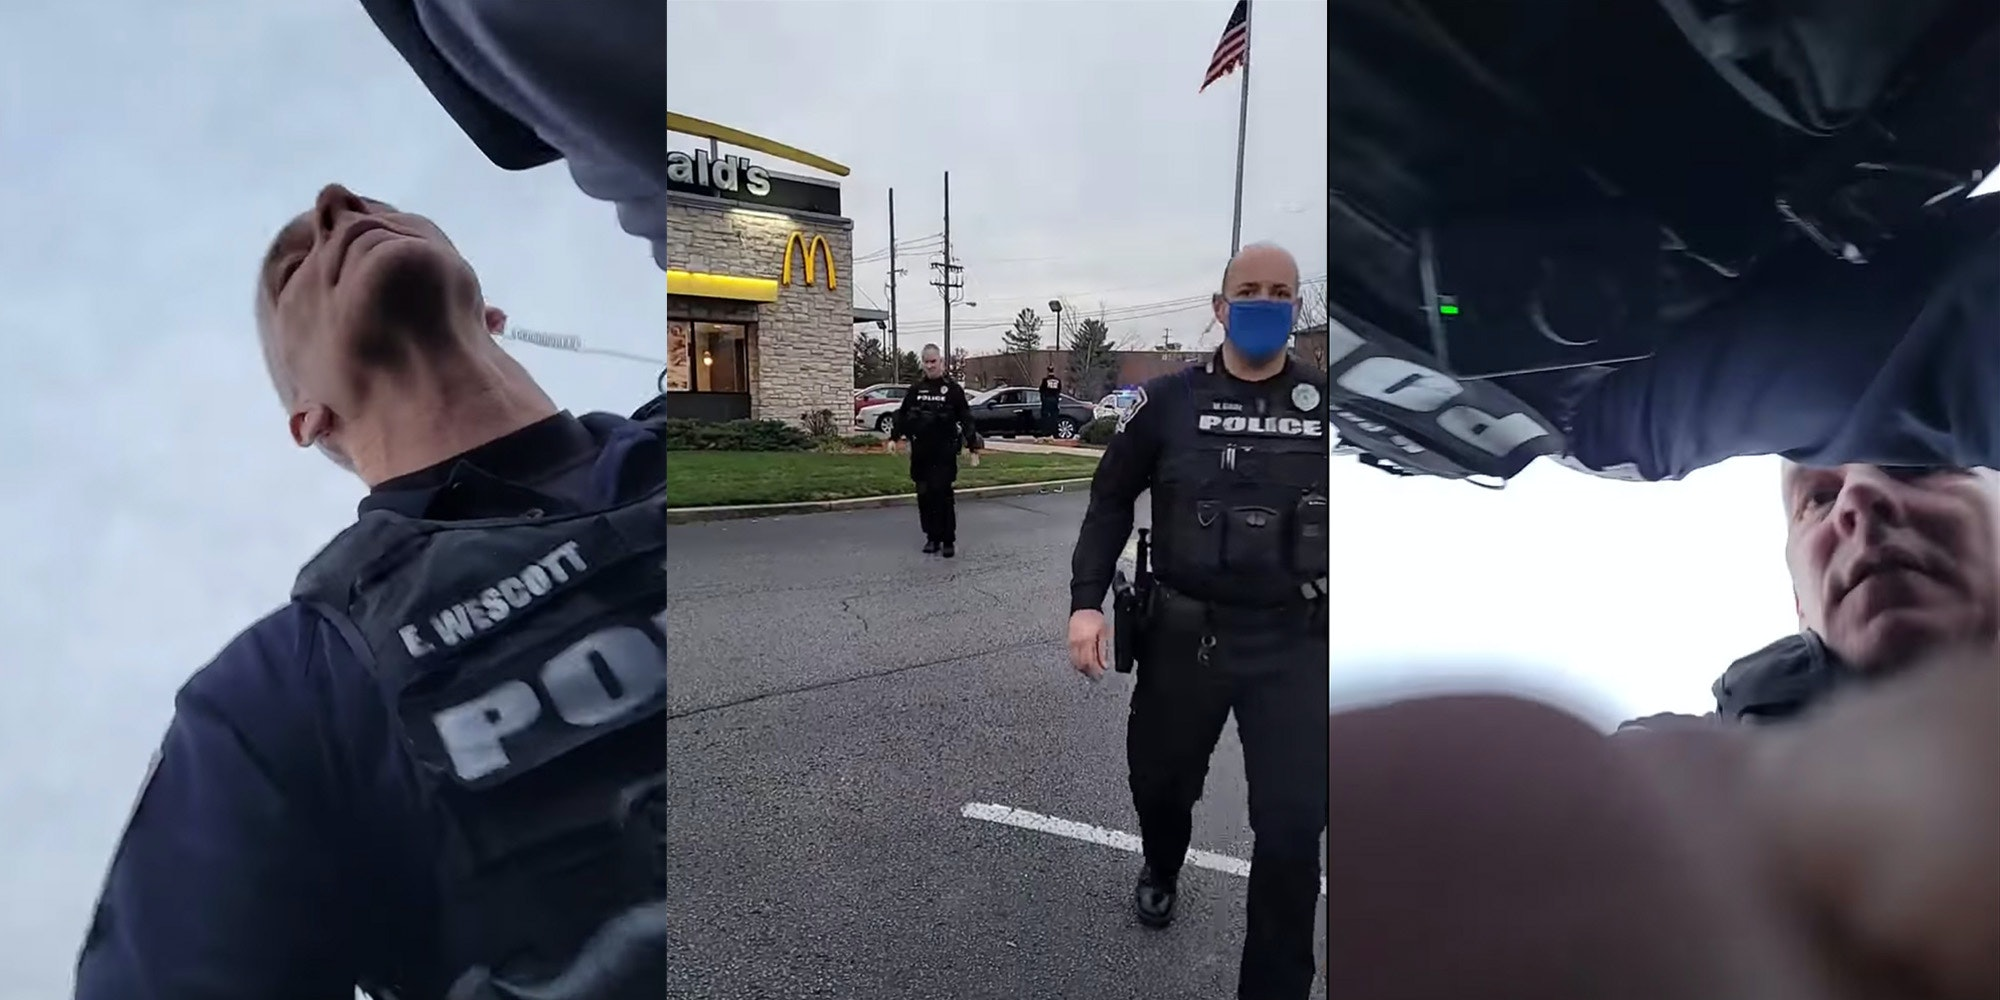 police officer strikes man live streaming arrest